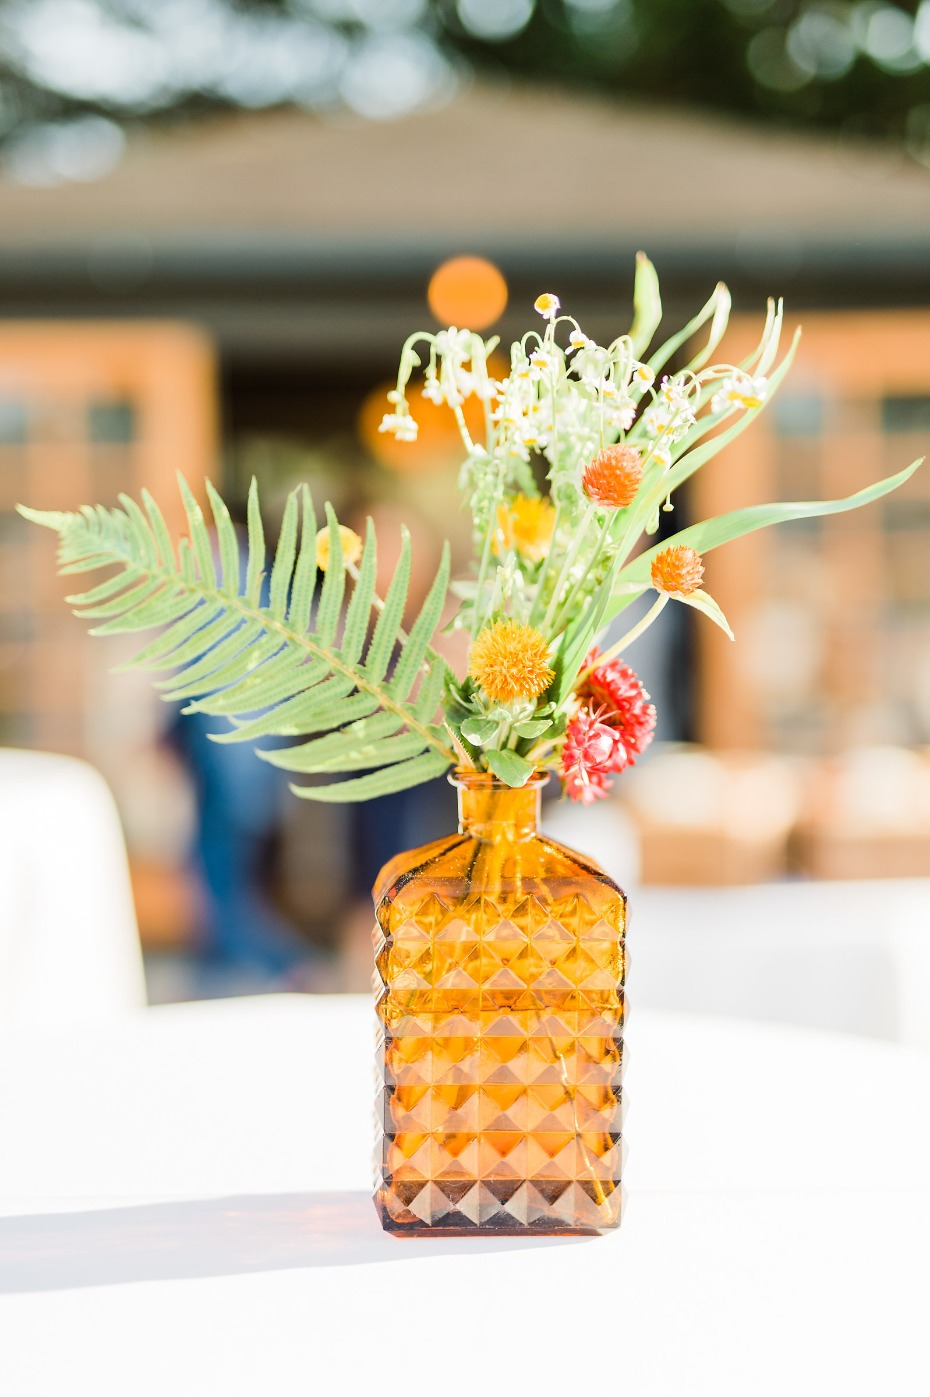 Use vintage bottles as vases